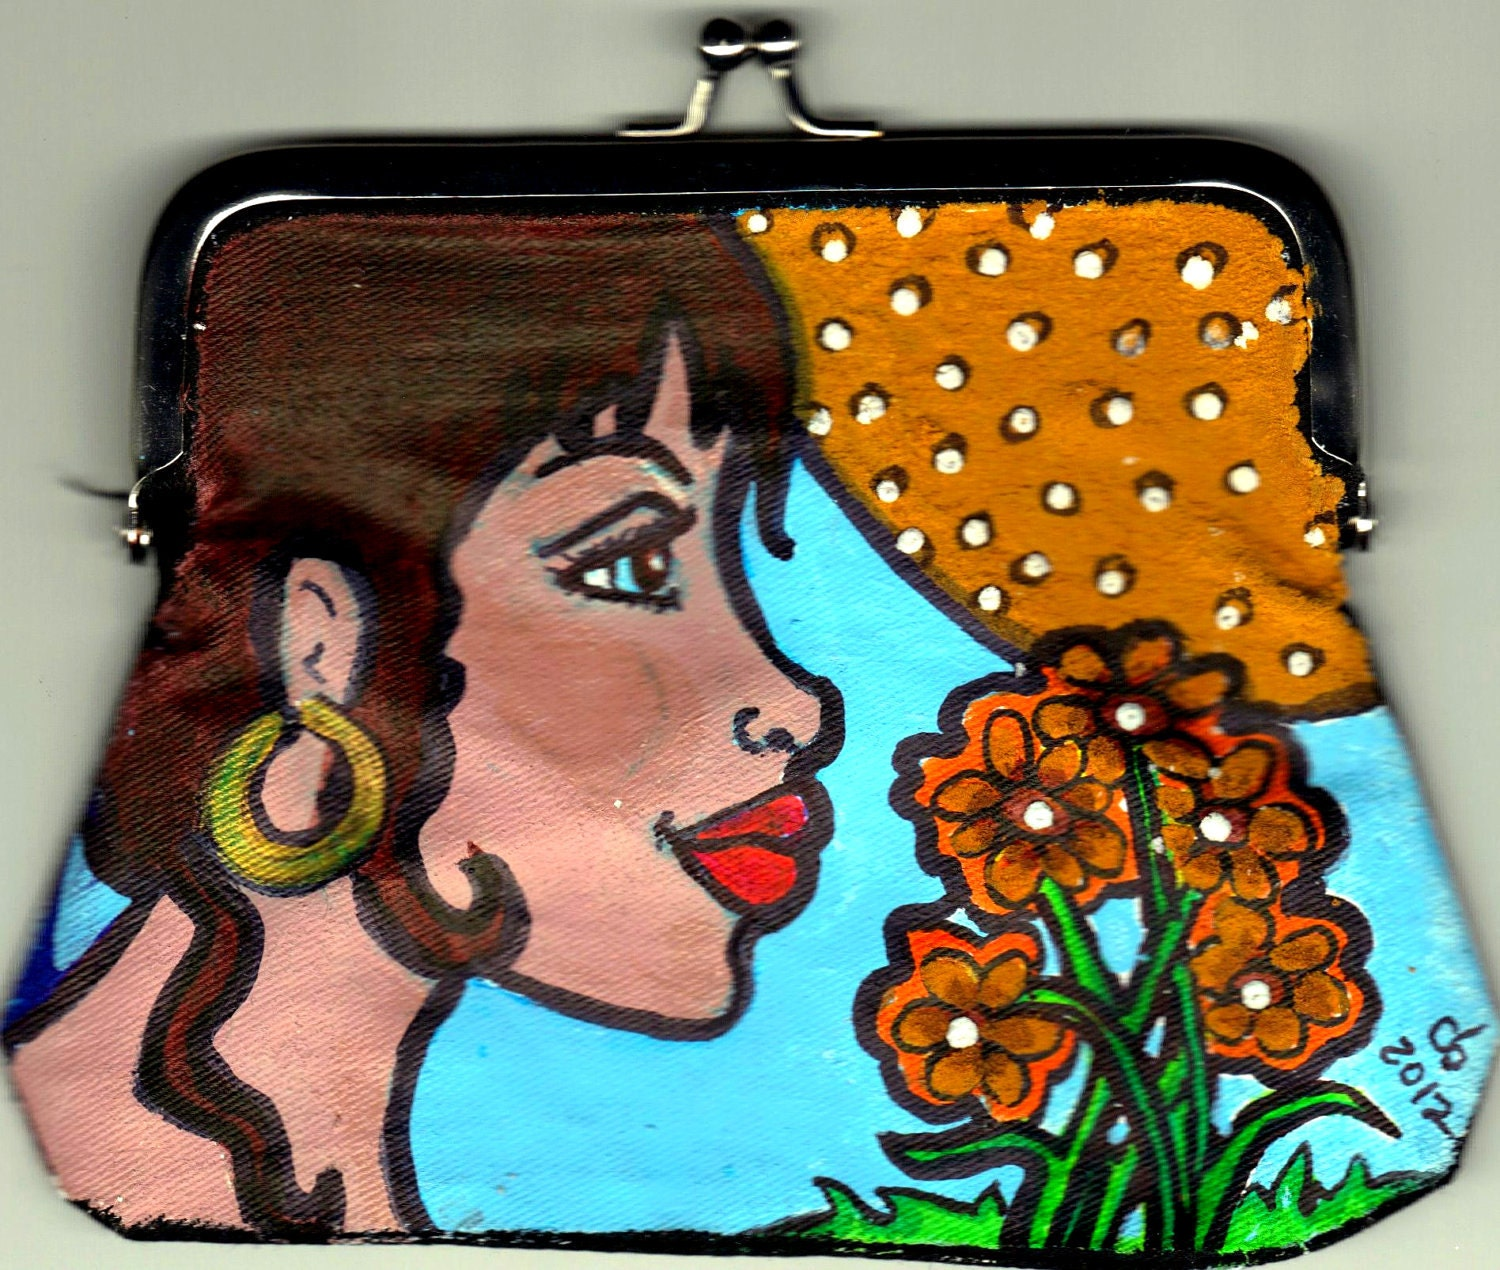 Colorful Handpainted Original Art Coin Purse